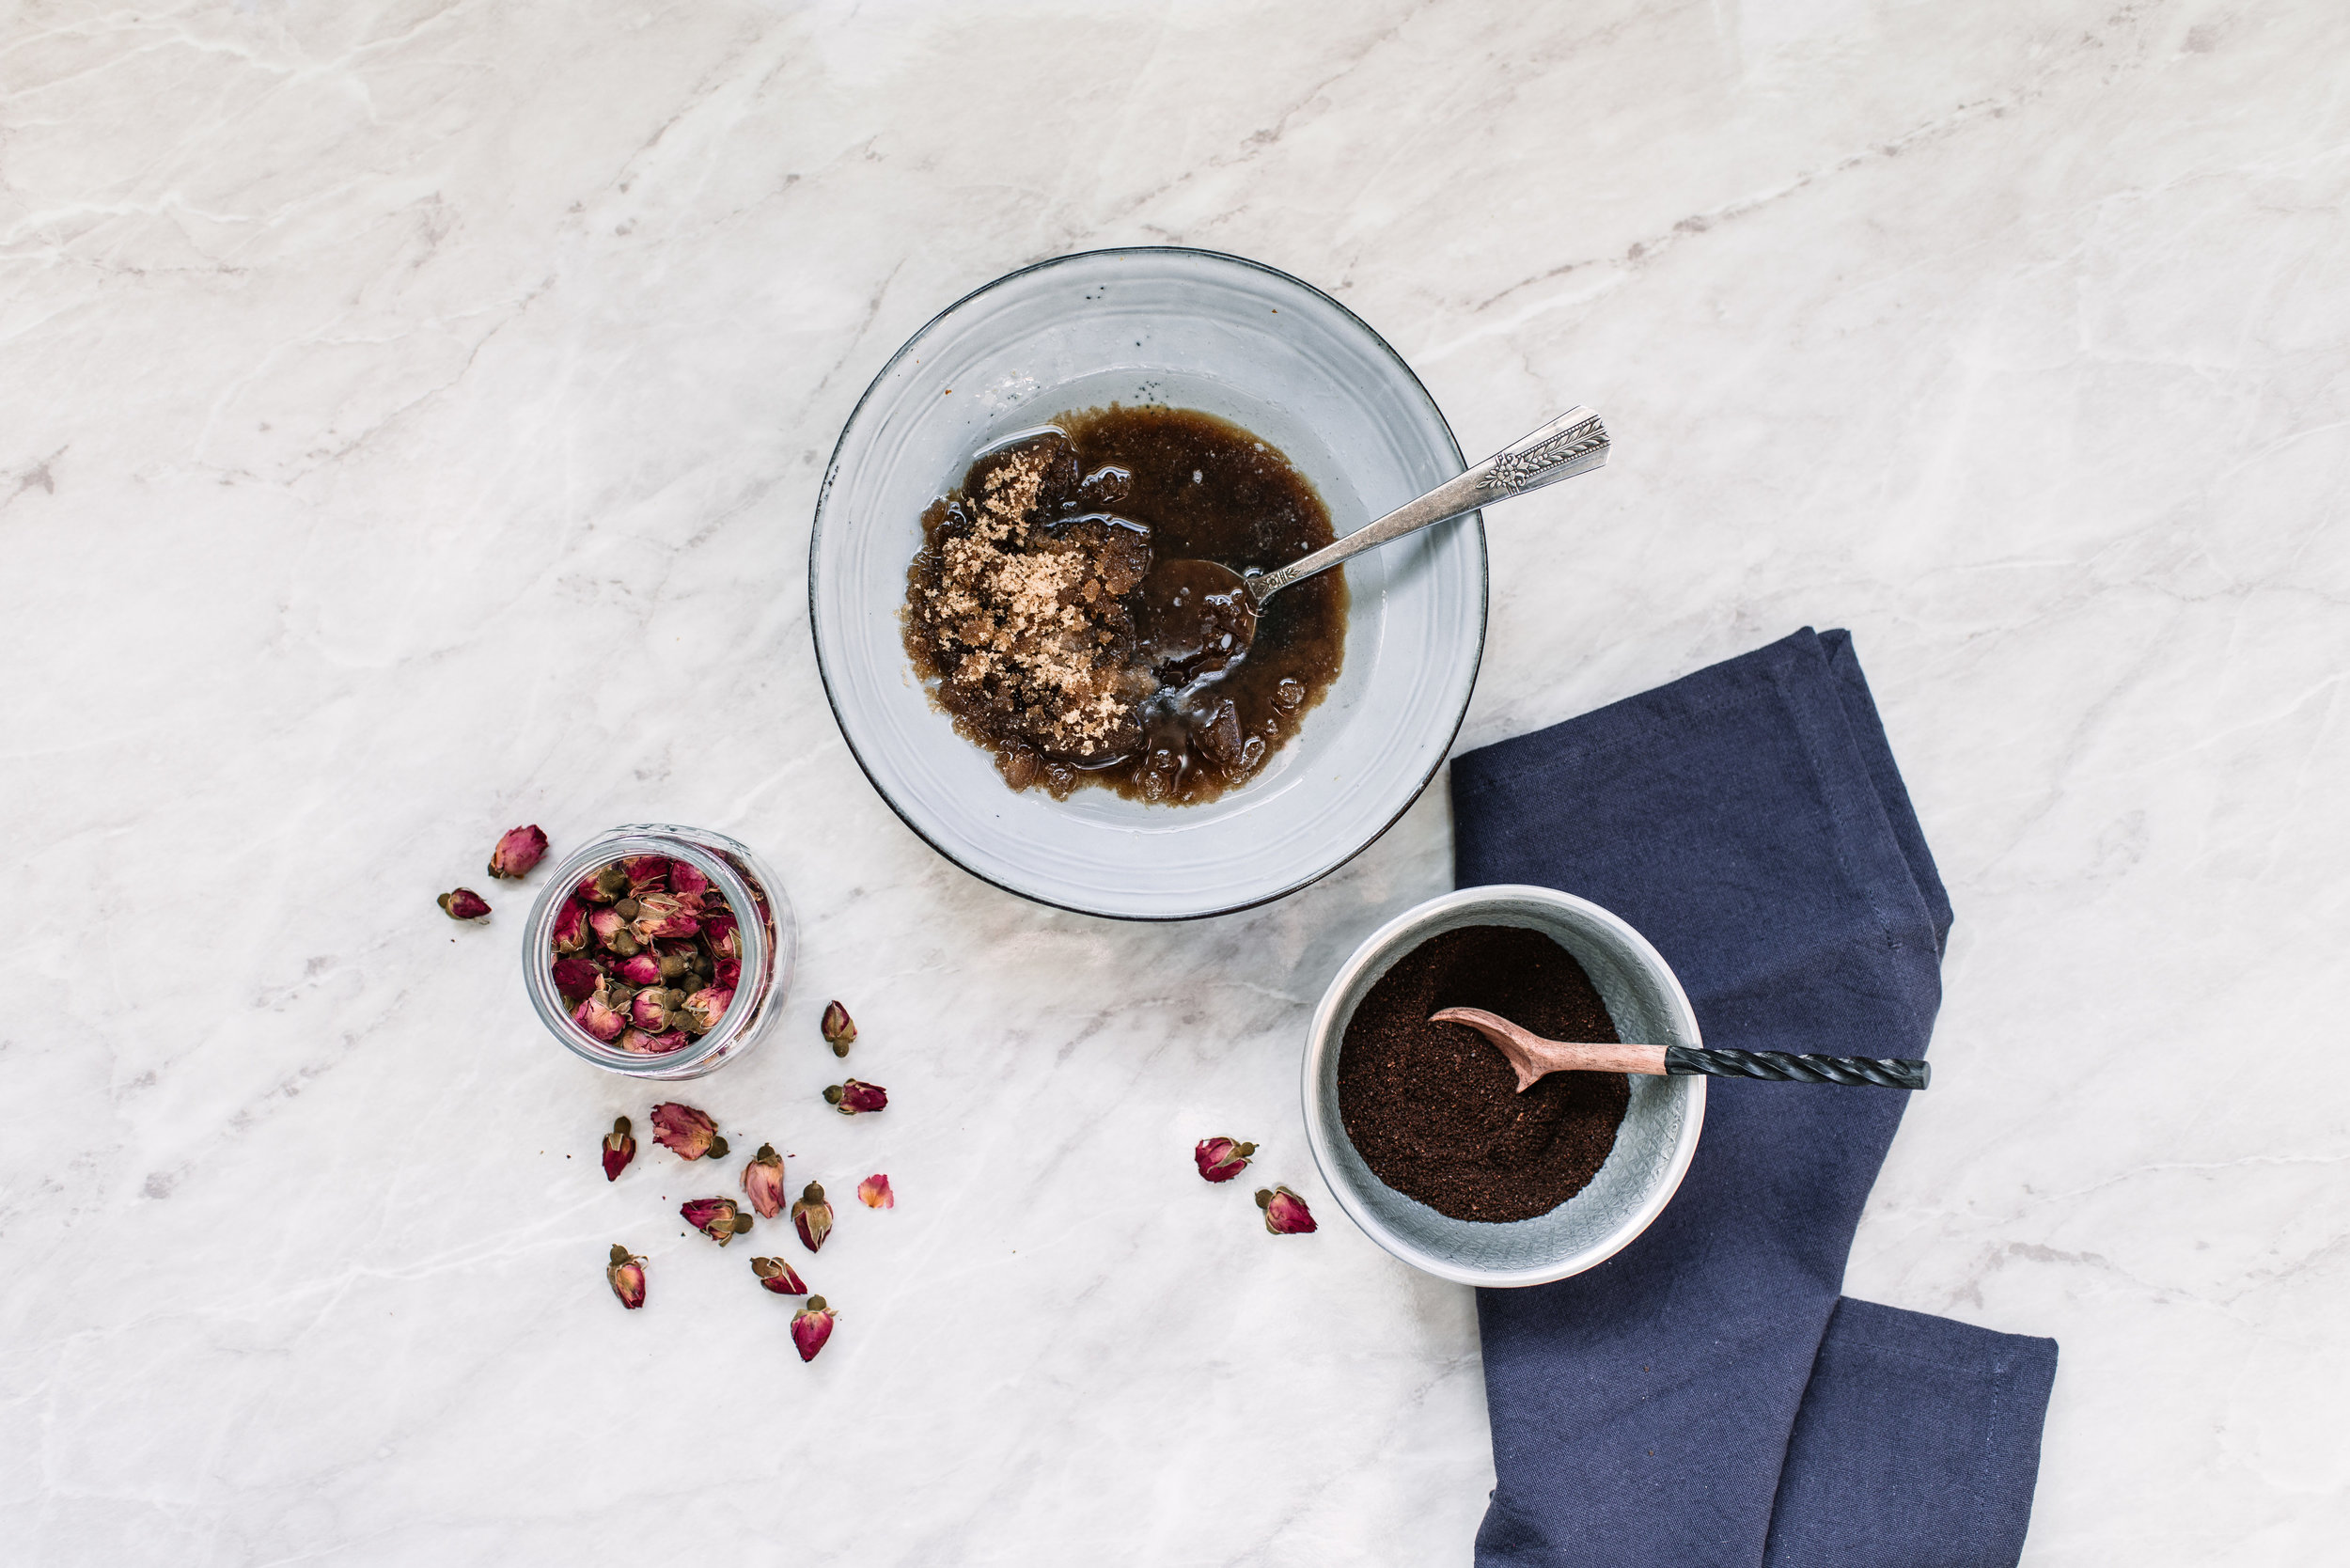 Paper_and_Moon_rose_coffee_bodyscrub_copper.jpg